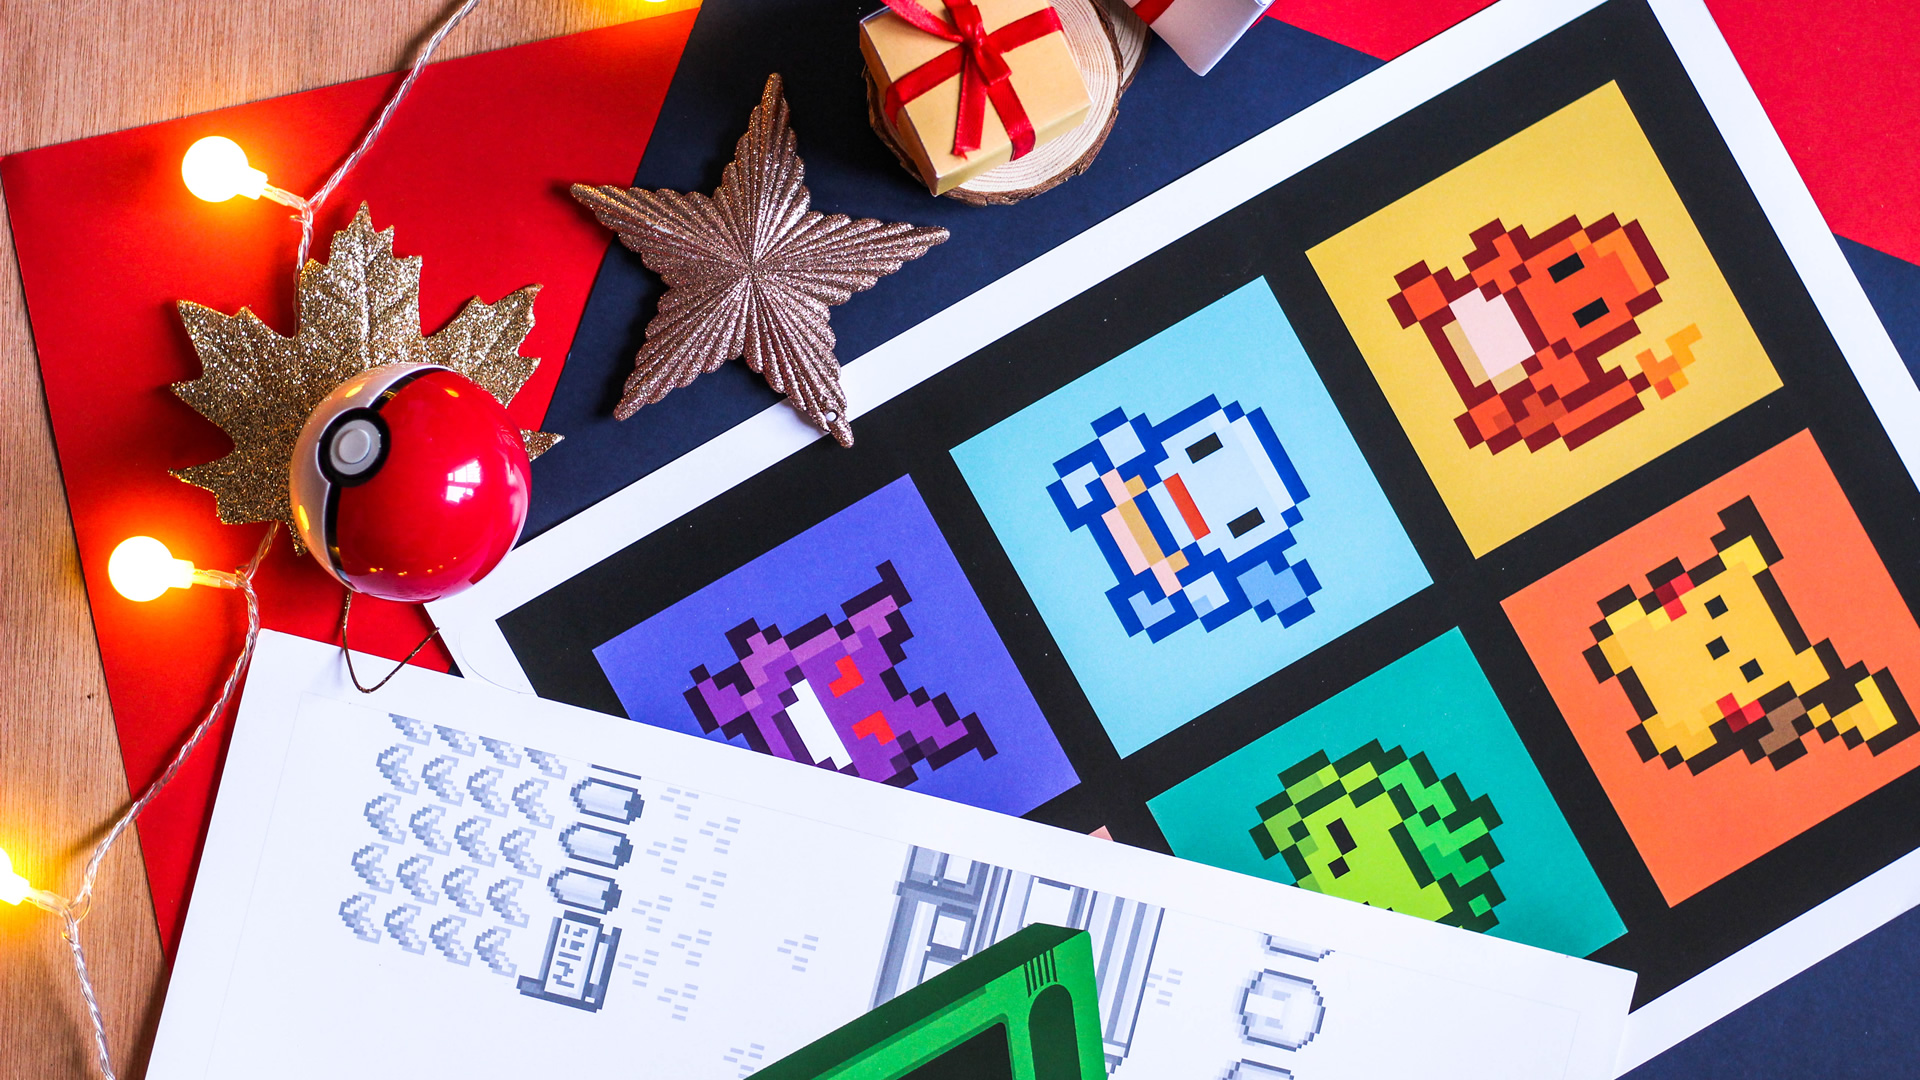 Geeky Gaming Prints for Christmas